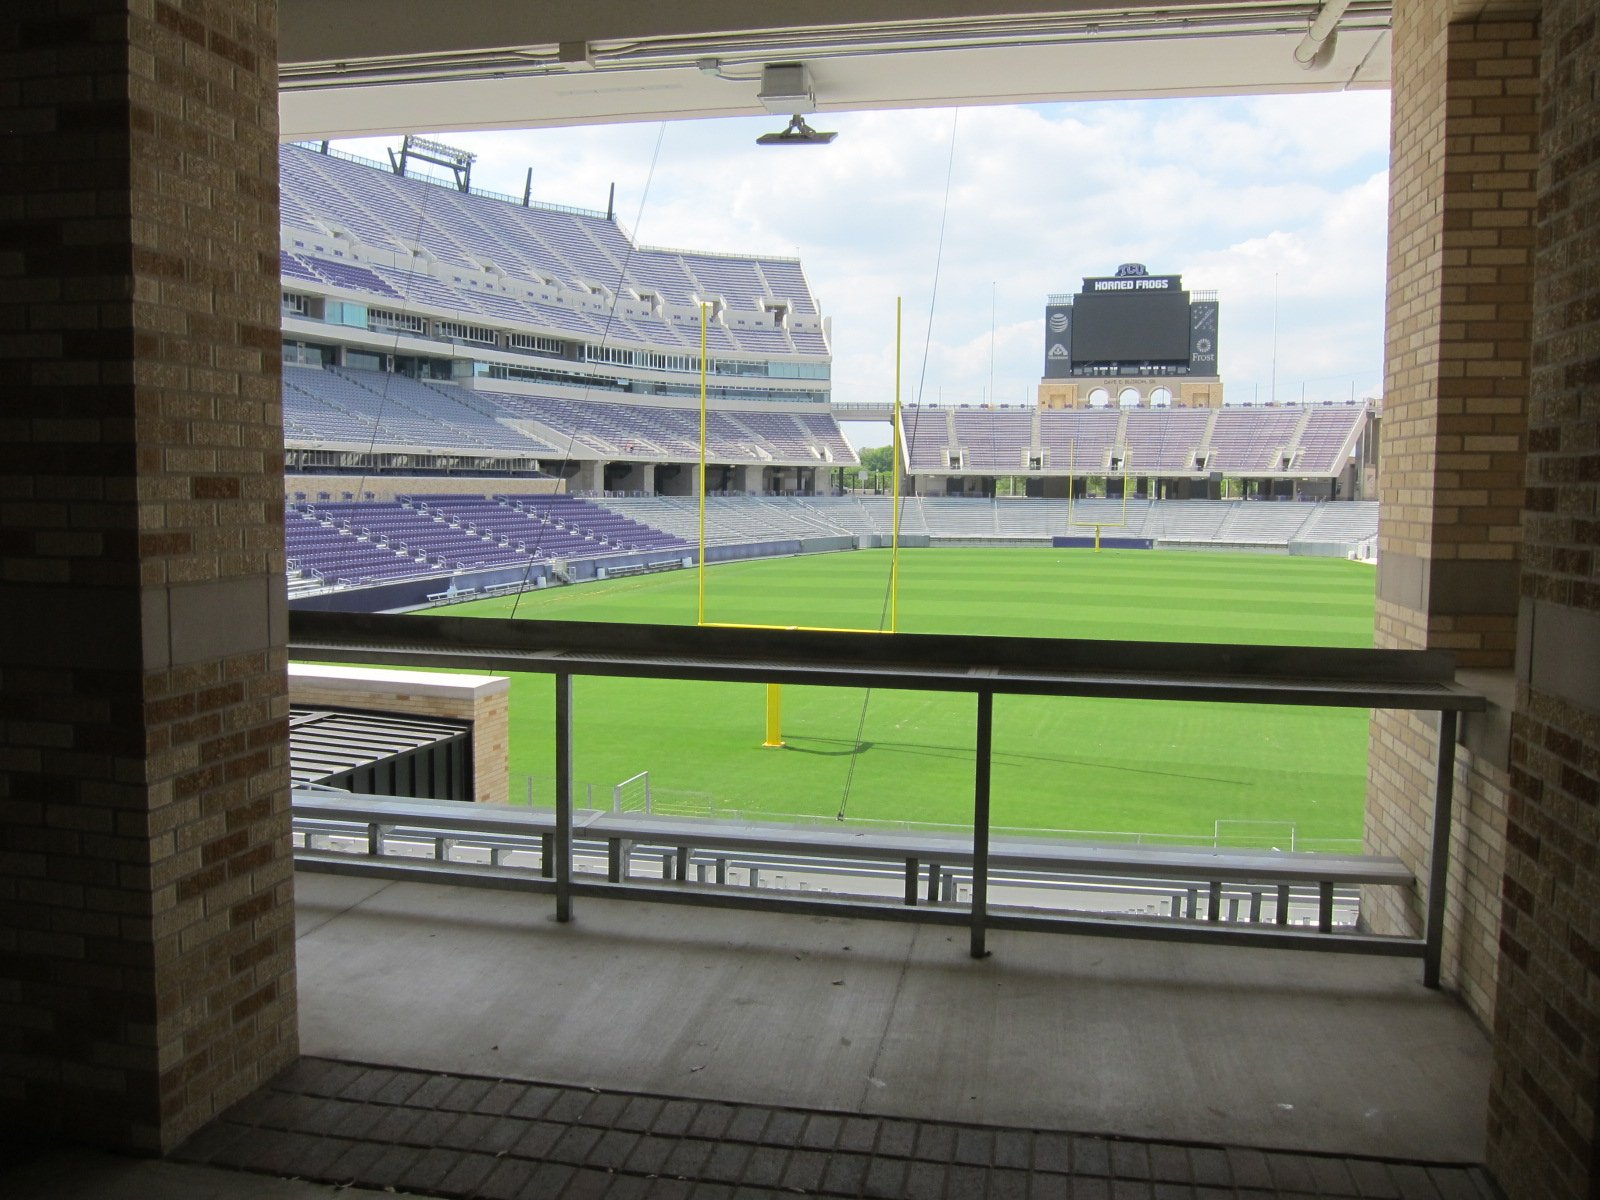 South endzone standing room area at Amon Carter Stadium